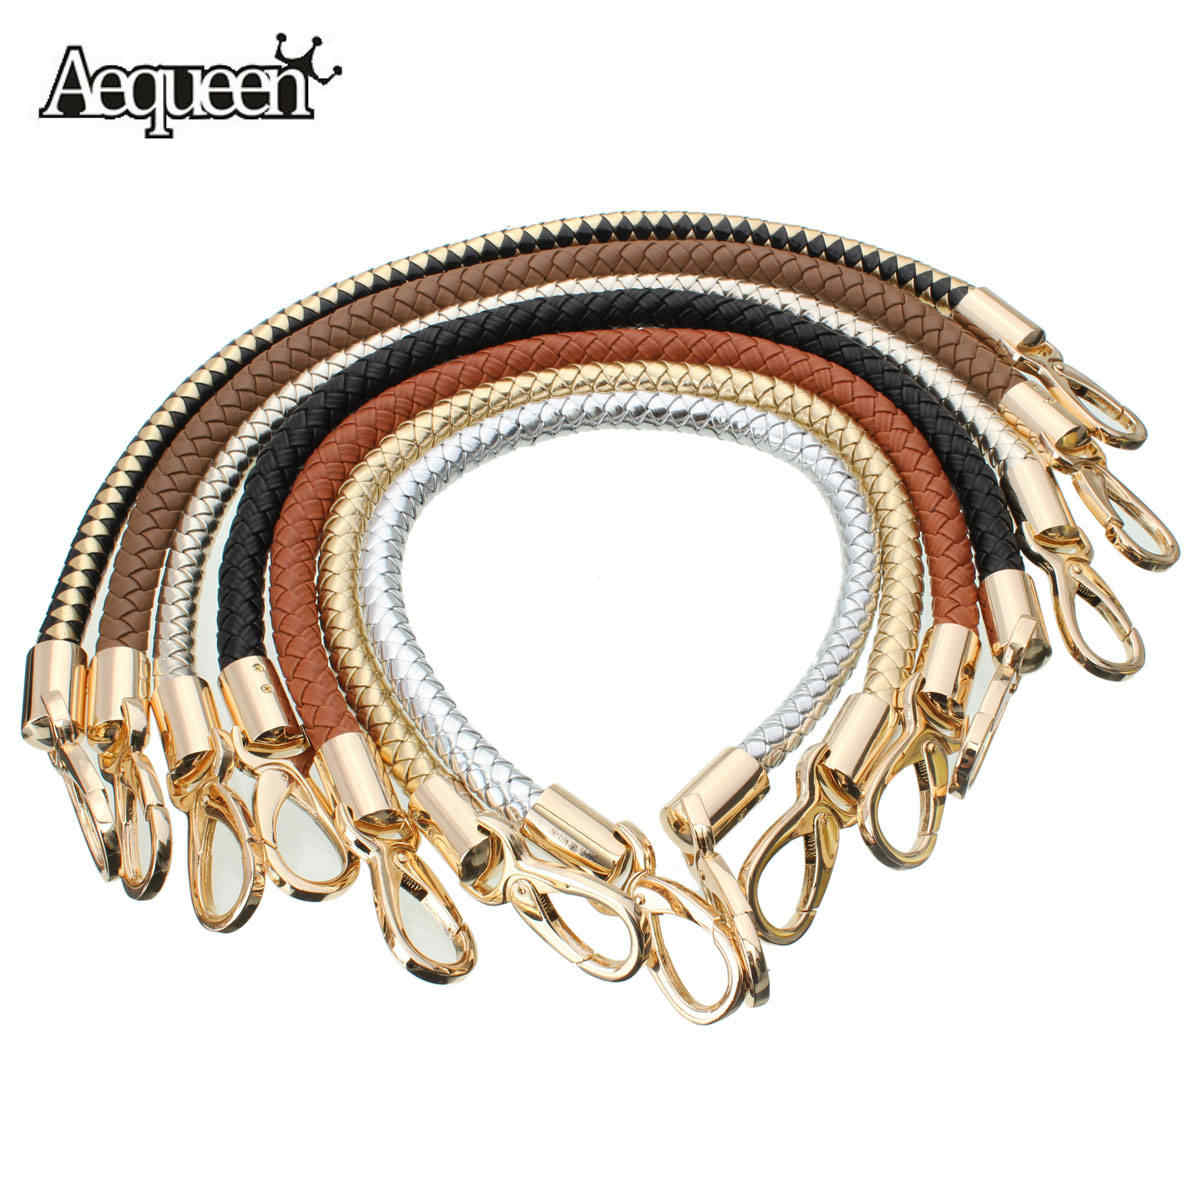 49cm Length New Design Bag DIY Replacement Accessaries Shoulder Bags Belt Handle DIY Replacement Handbag Strap Accessories